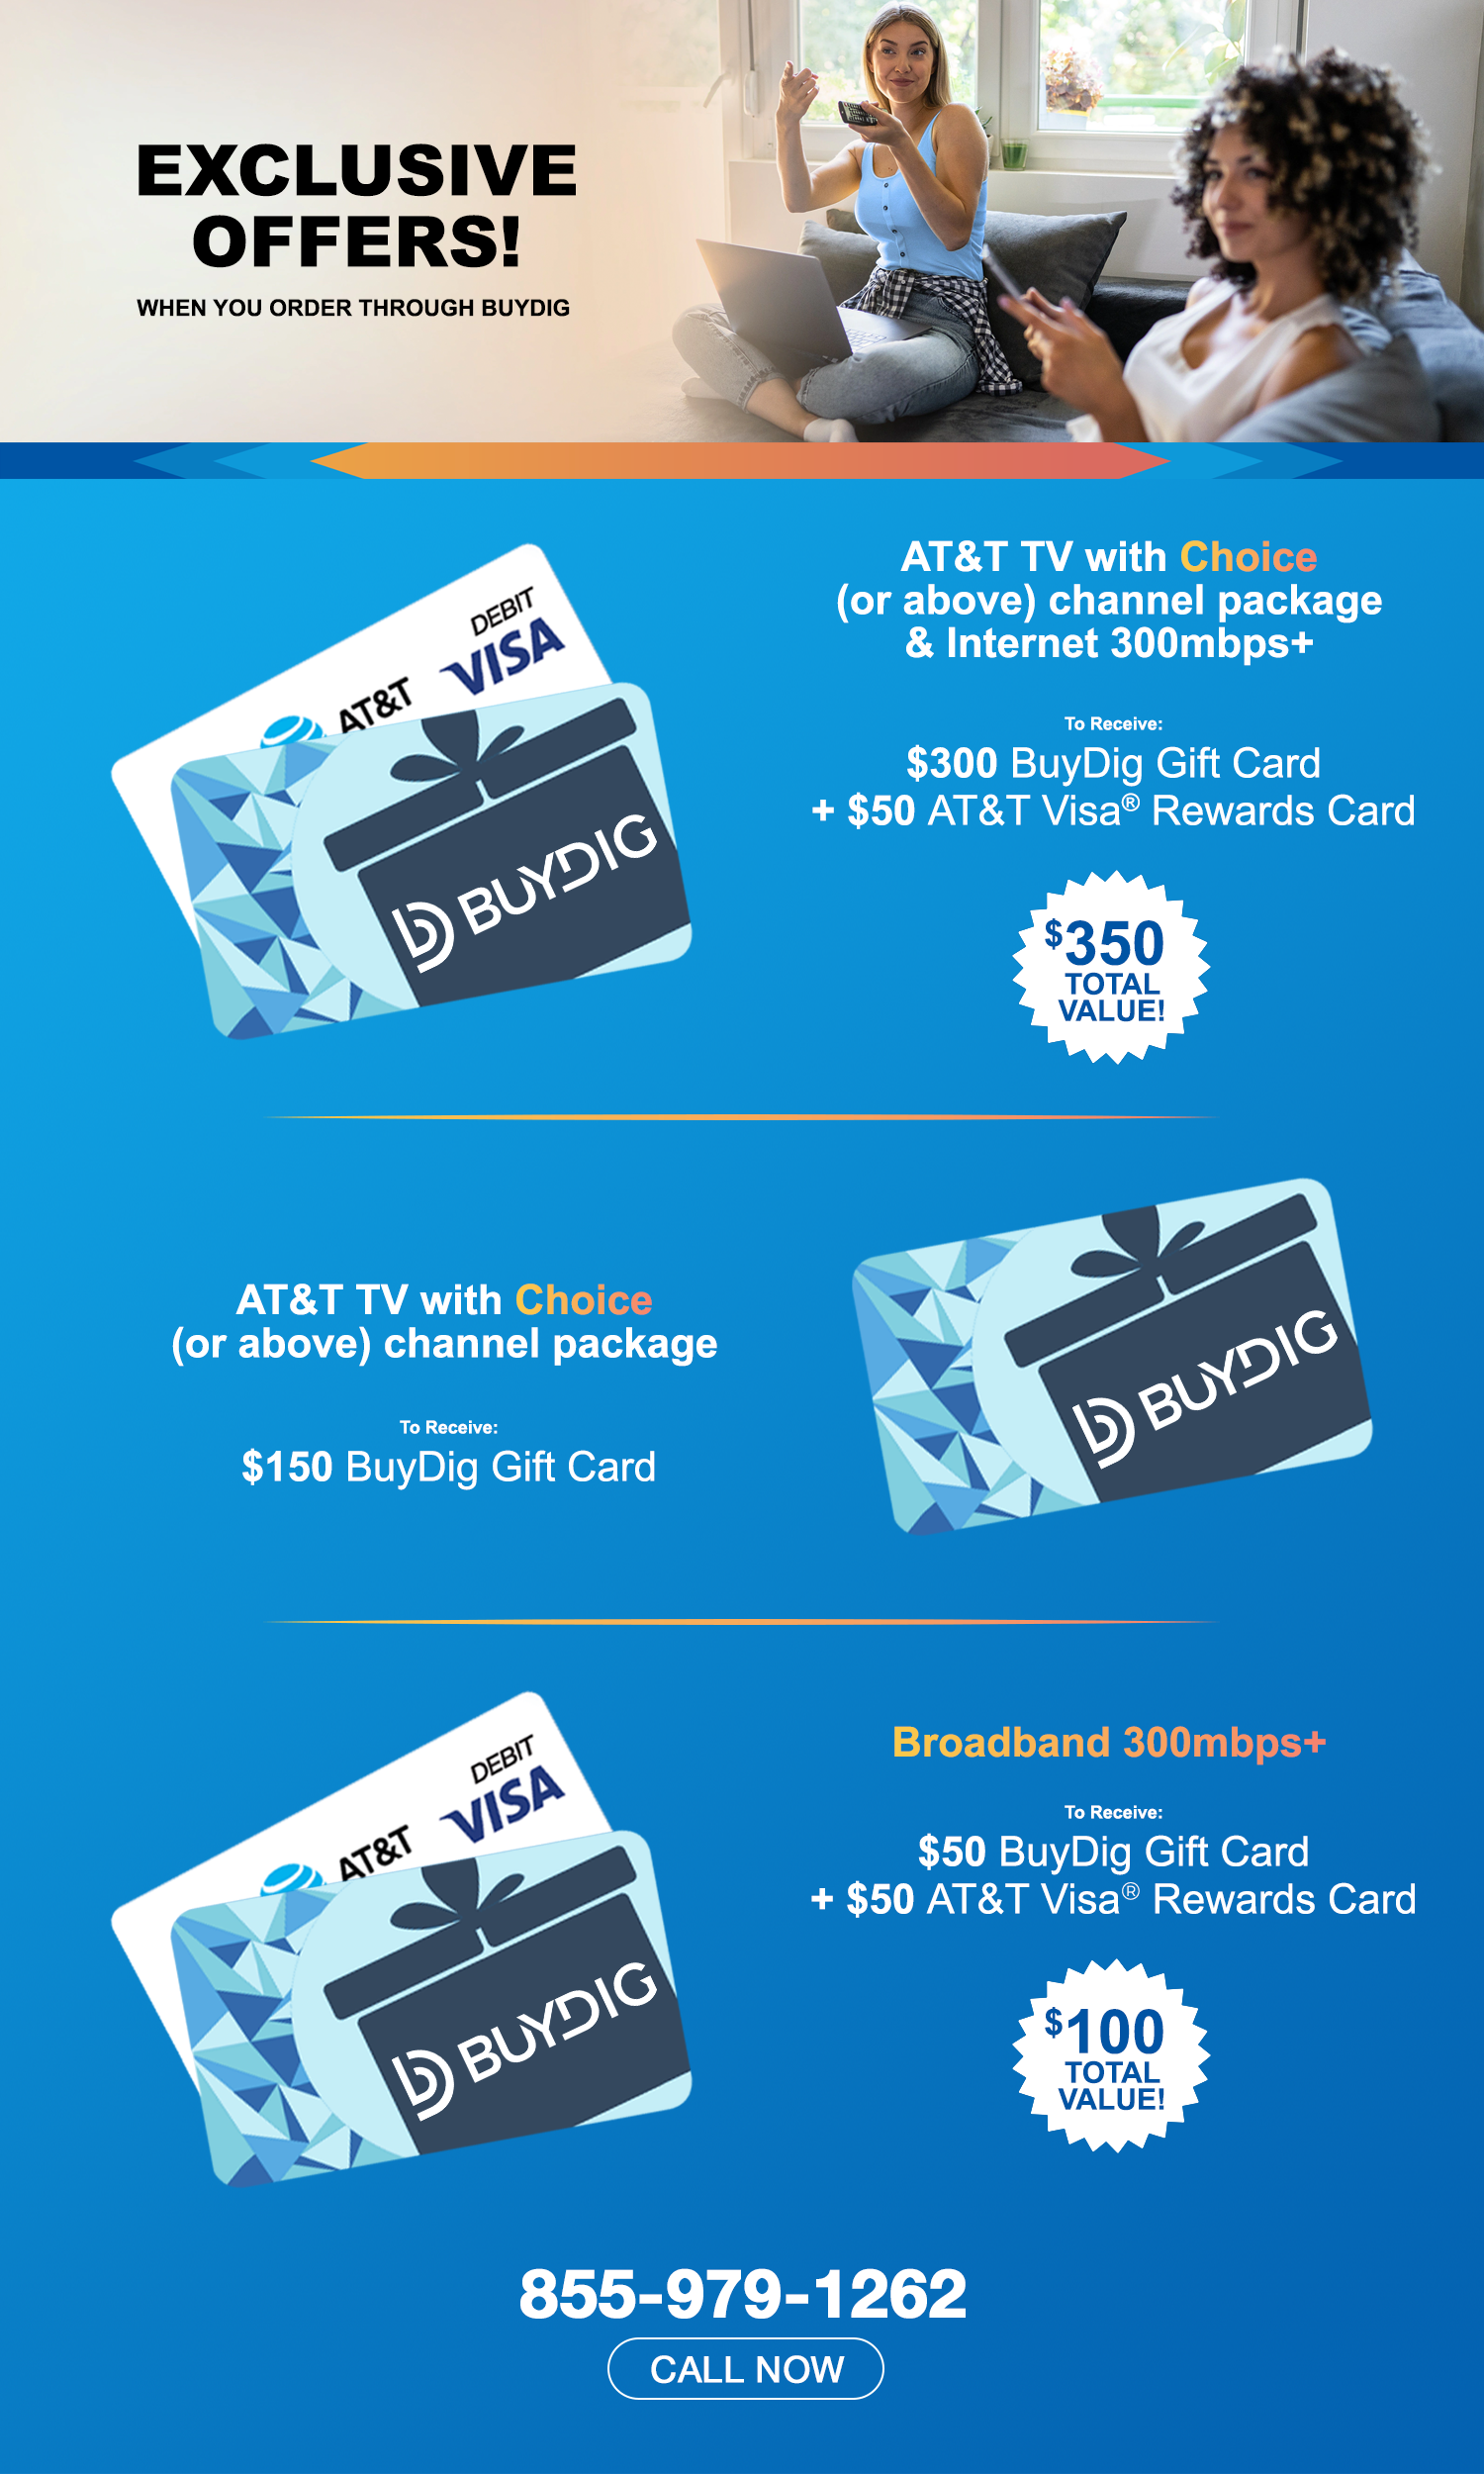 AT&T Exclusive Offers